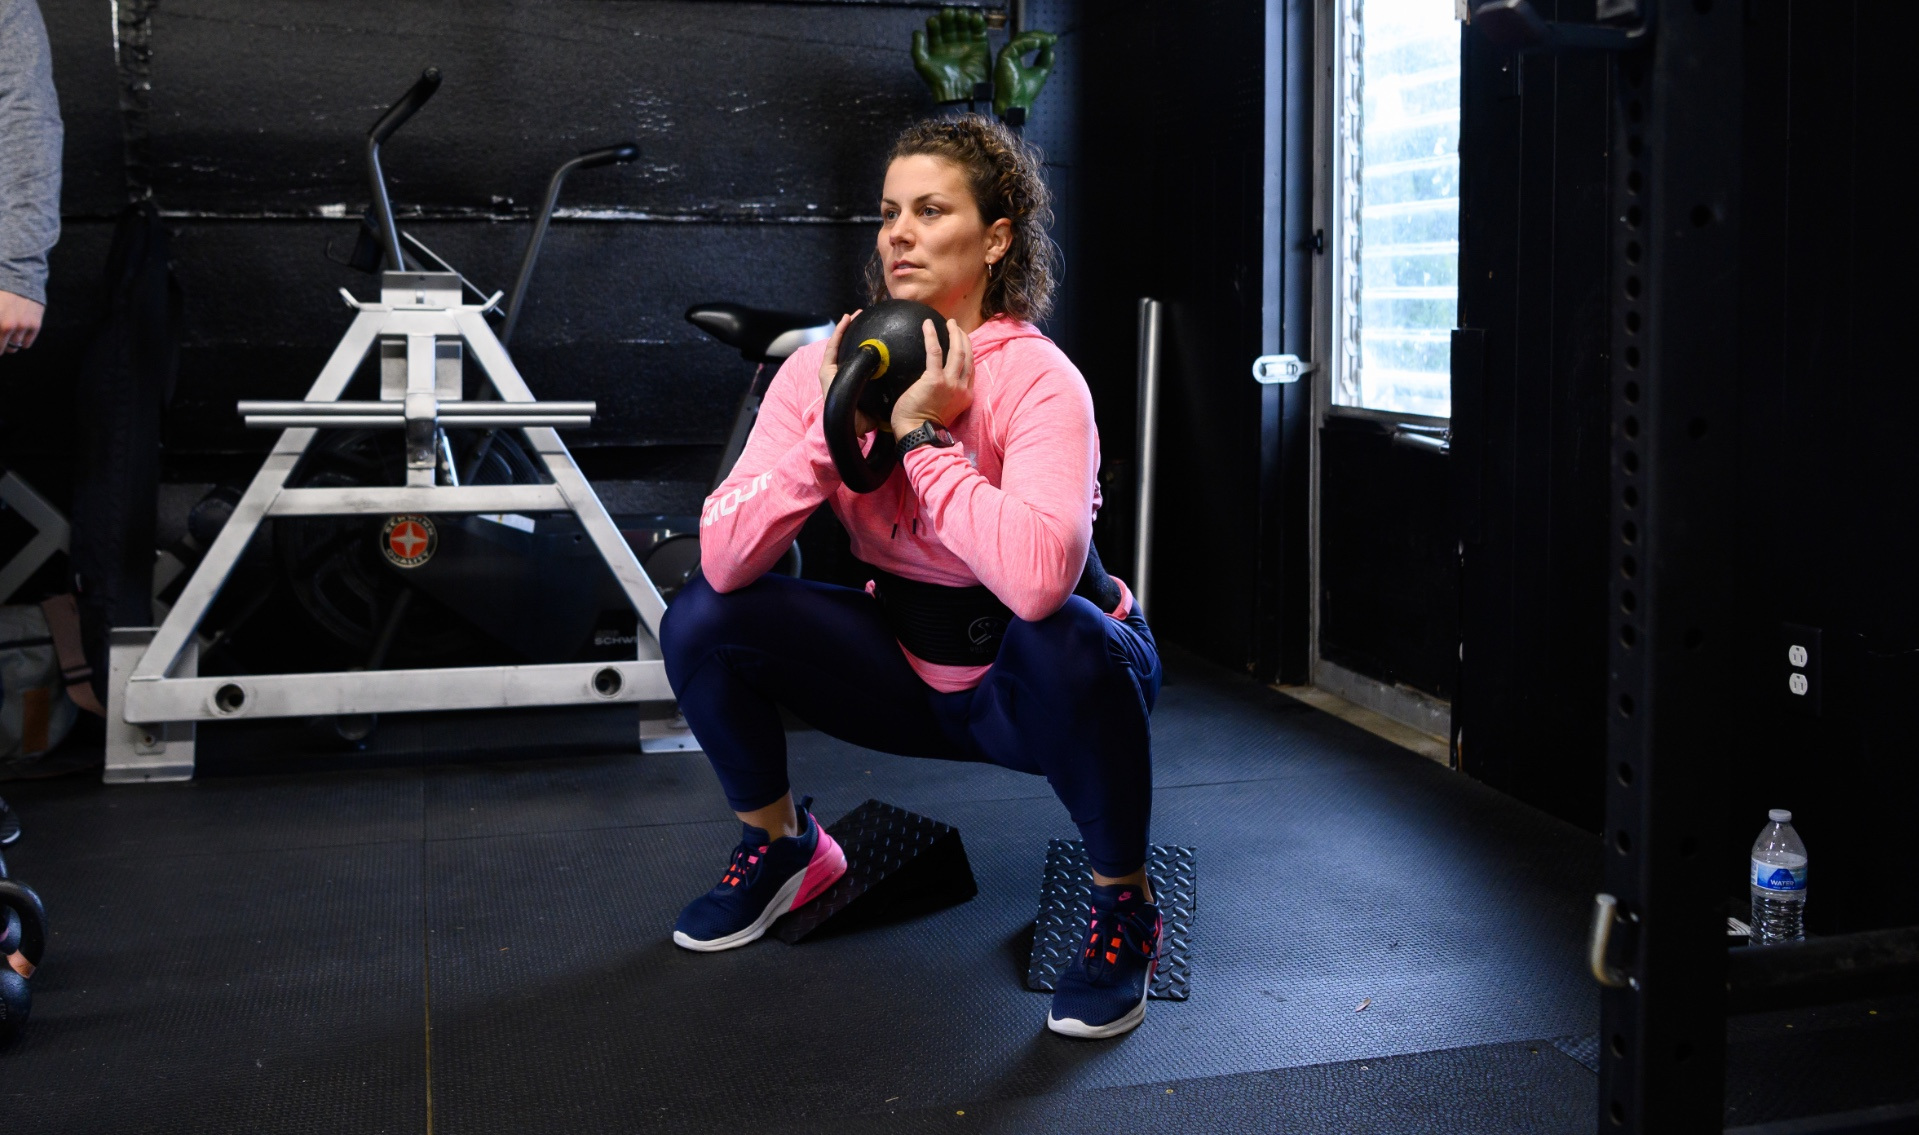 Geri looks focused as she squats holding a kettlebell while working out in the gym.